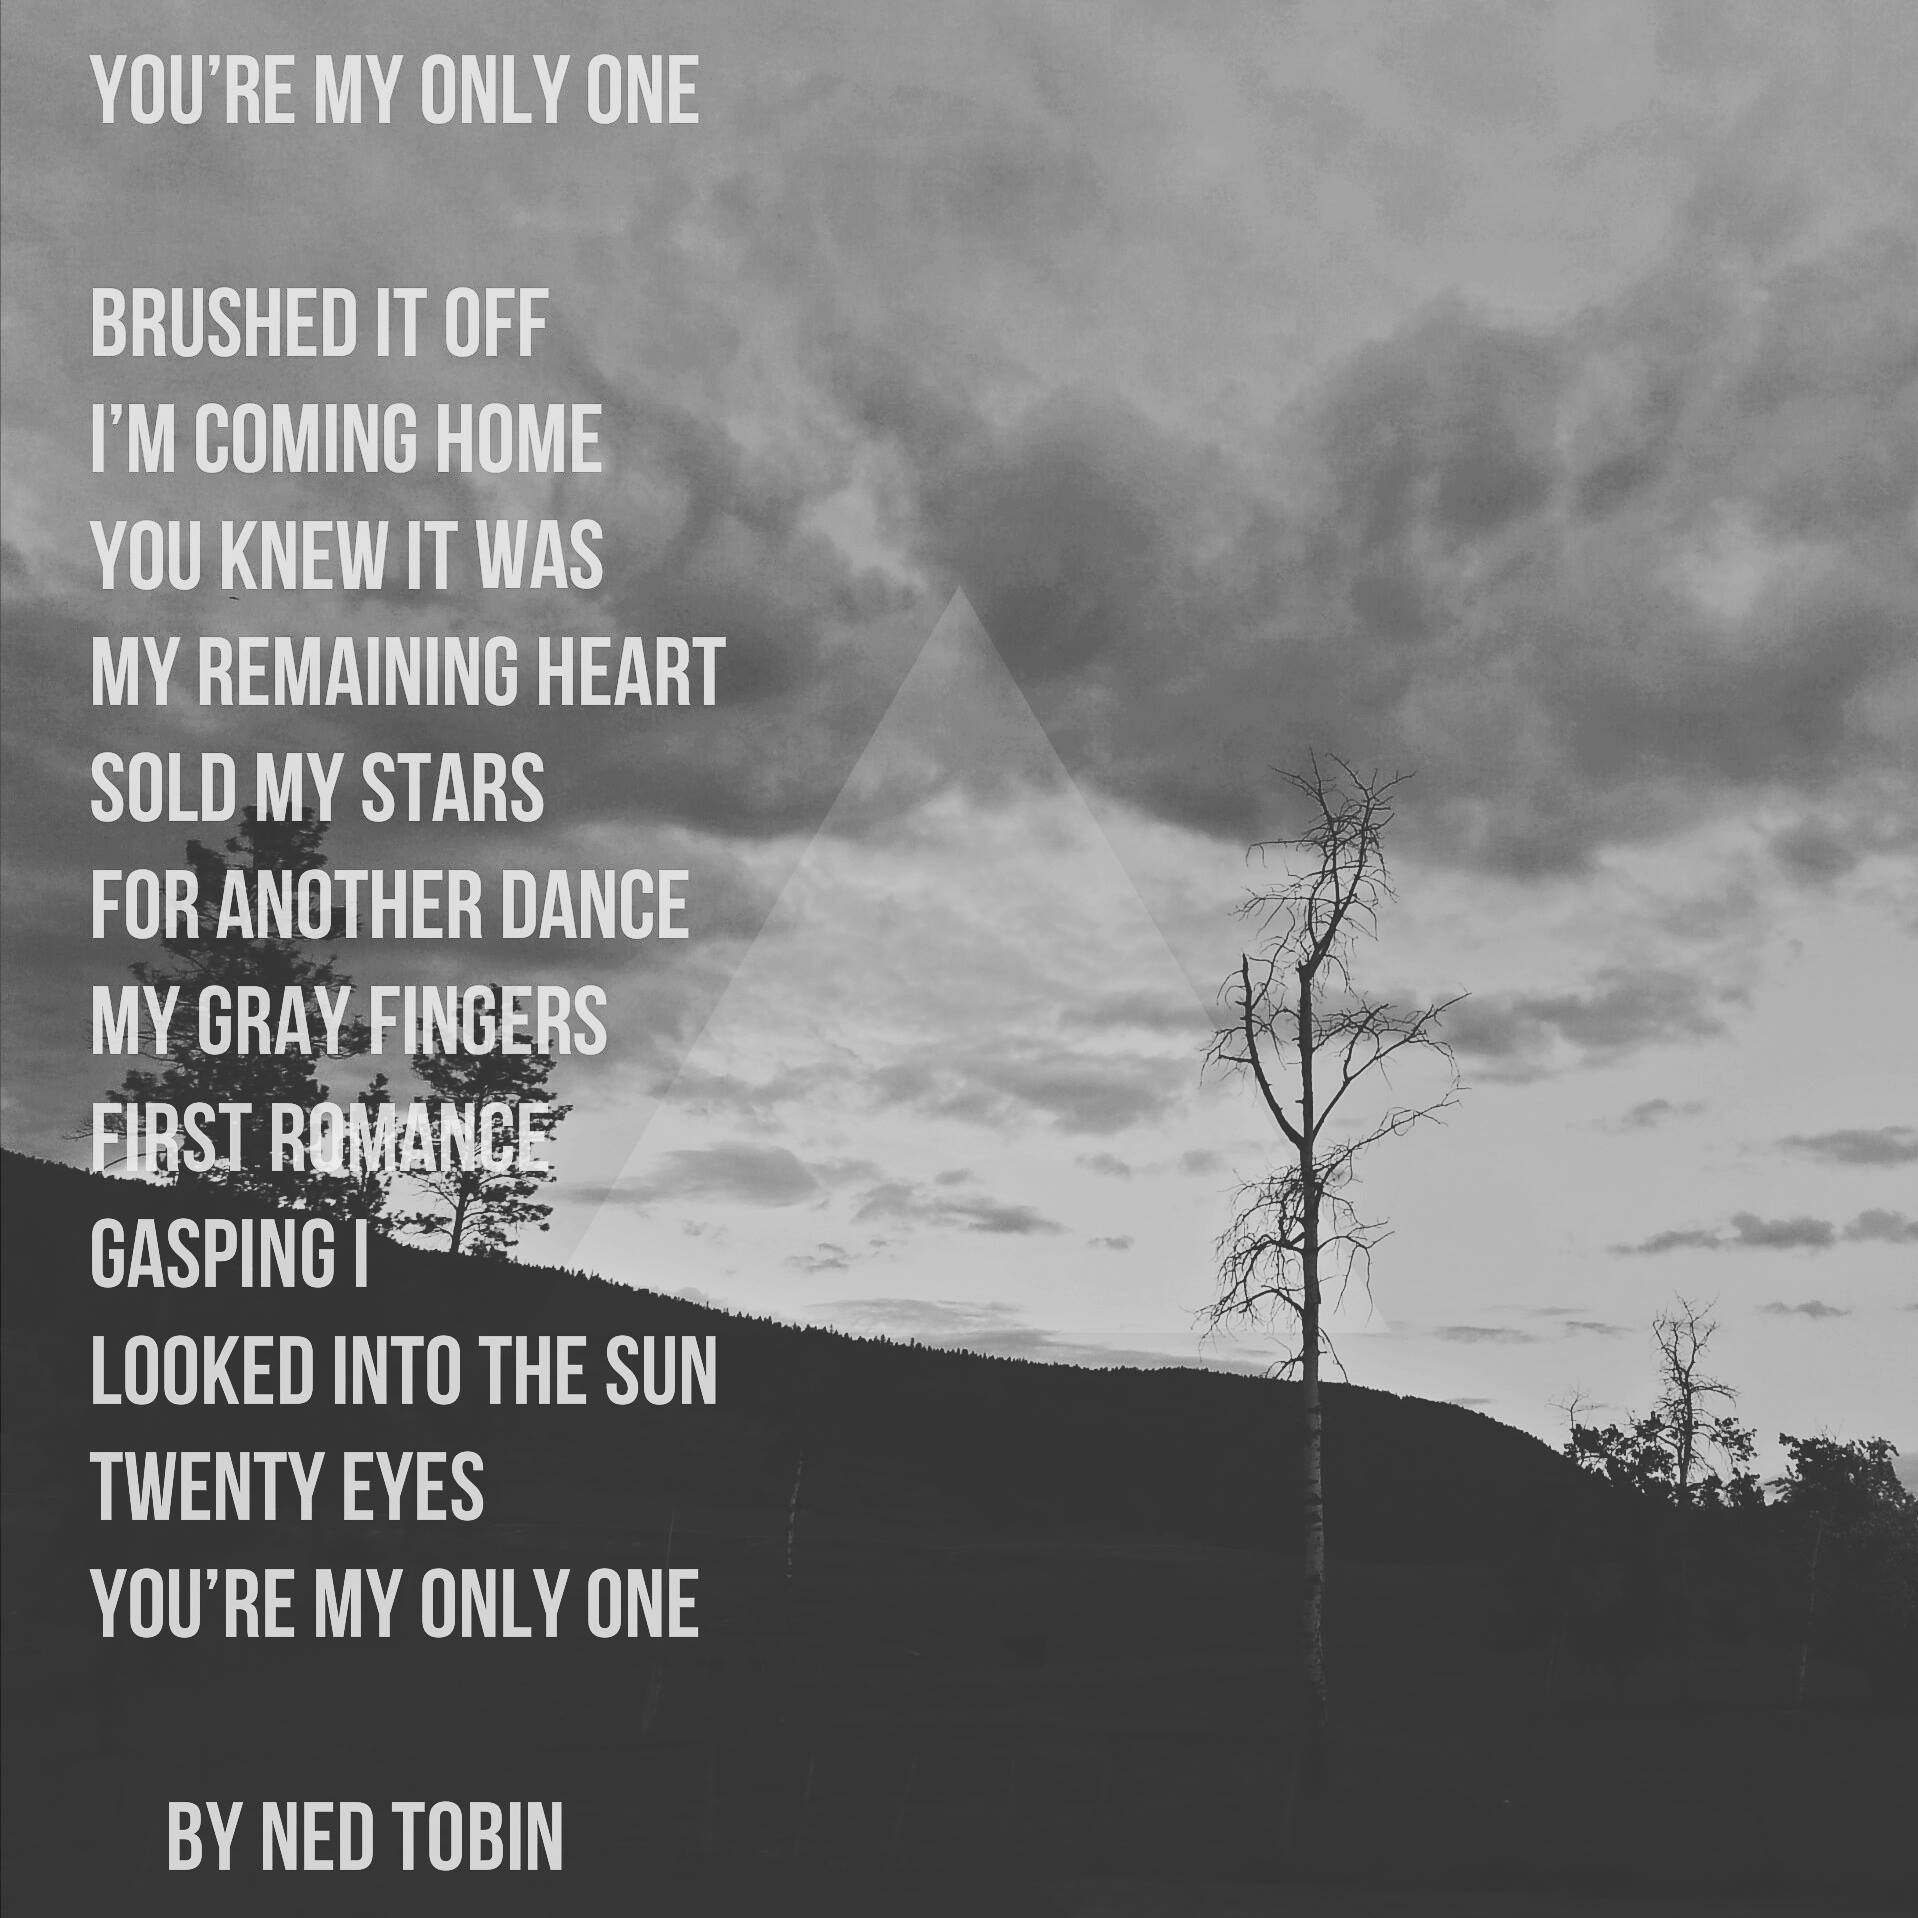 You're My Only One by Ned Tobin